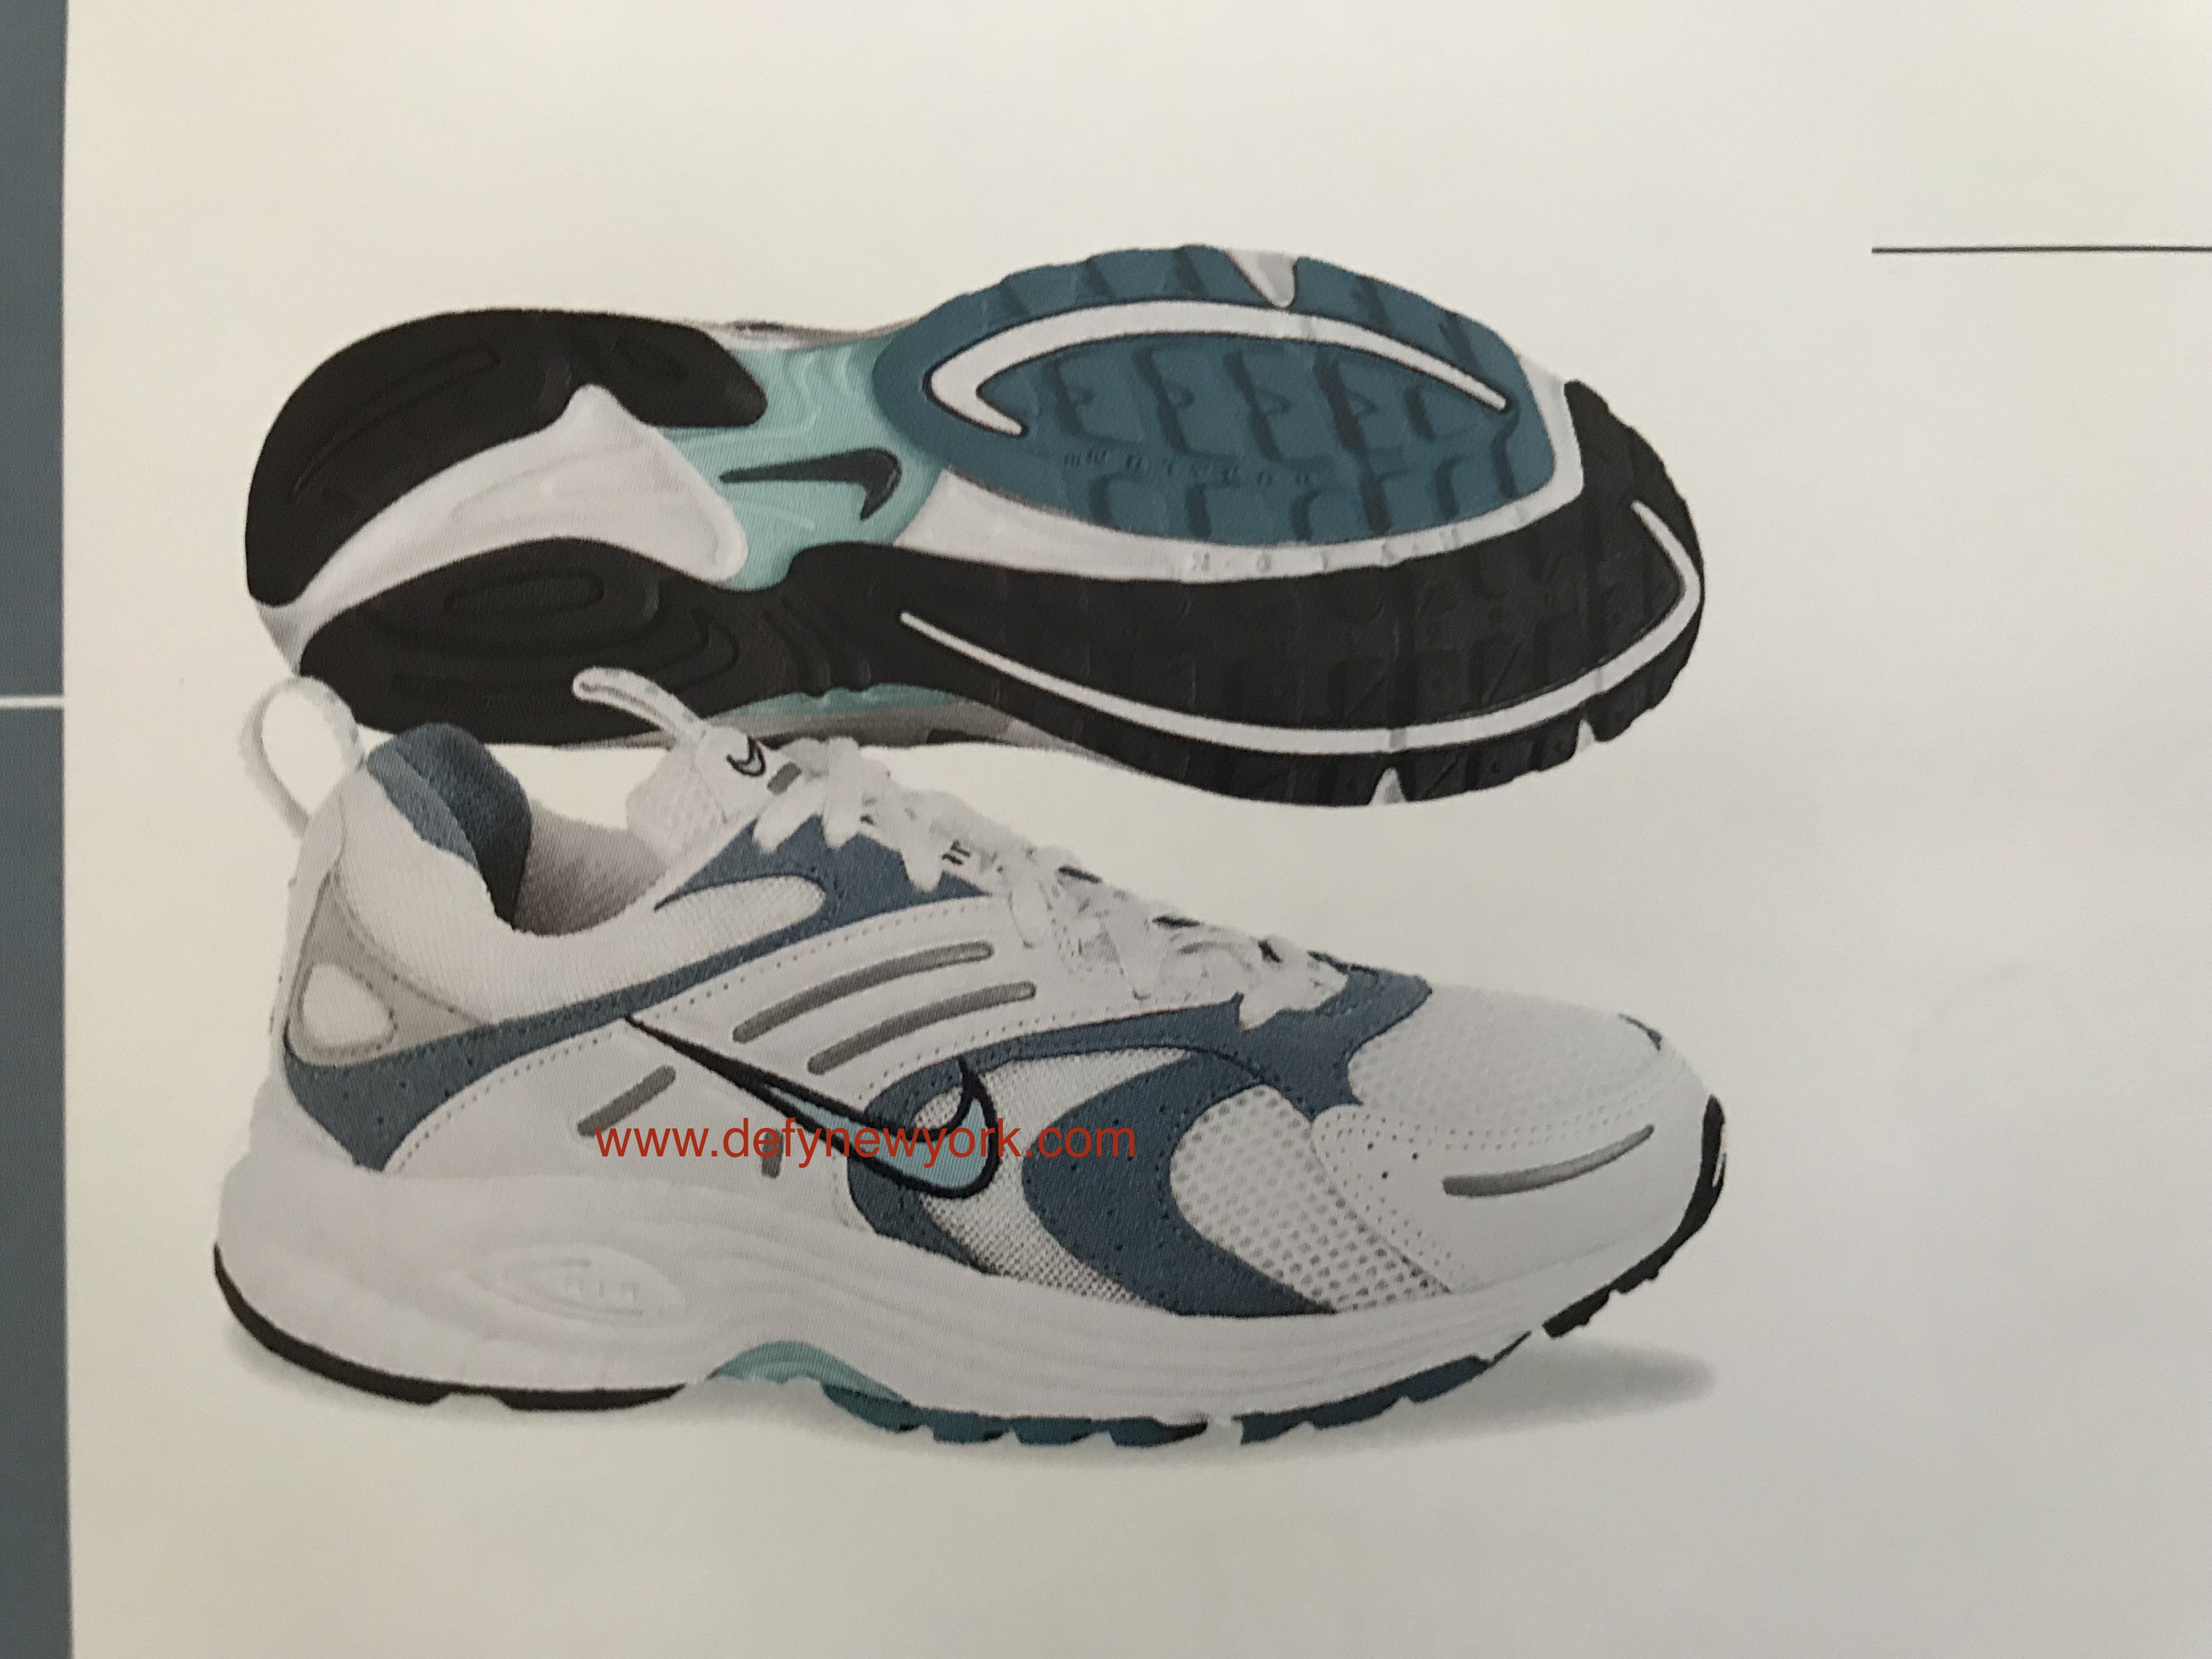 90c0c768e4d1 Nike Air Structure Triax Running Shoe 2003   DeFY. New York-Sneakers ...